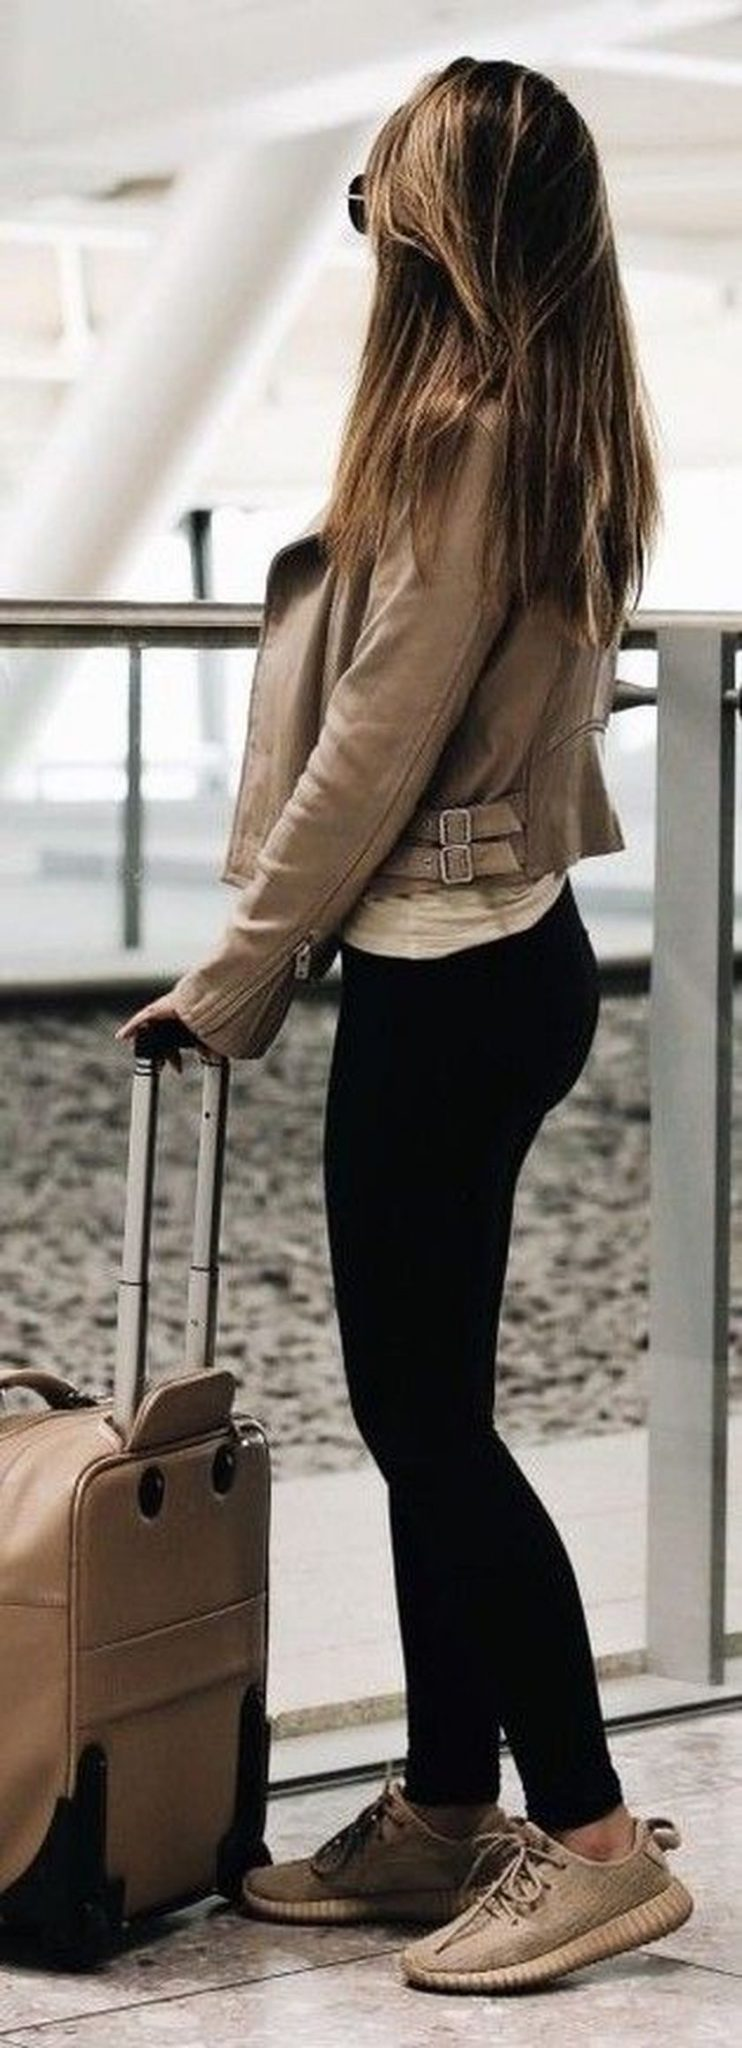 summer airplane outfits travel style 24  fashion best